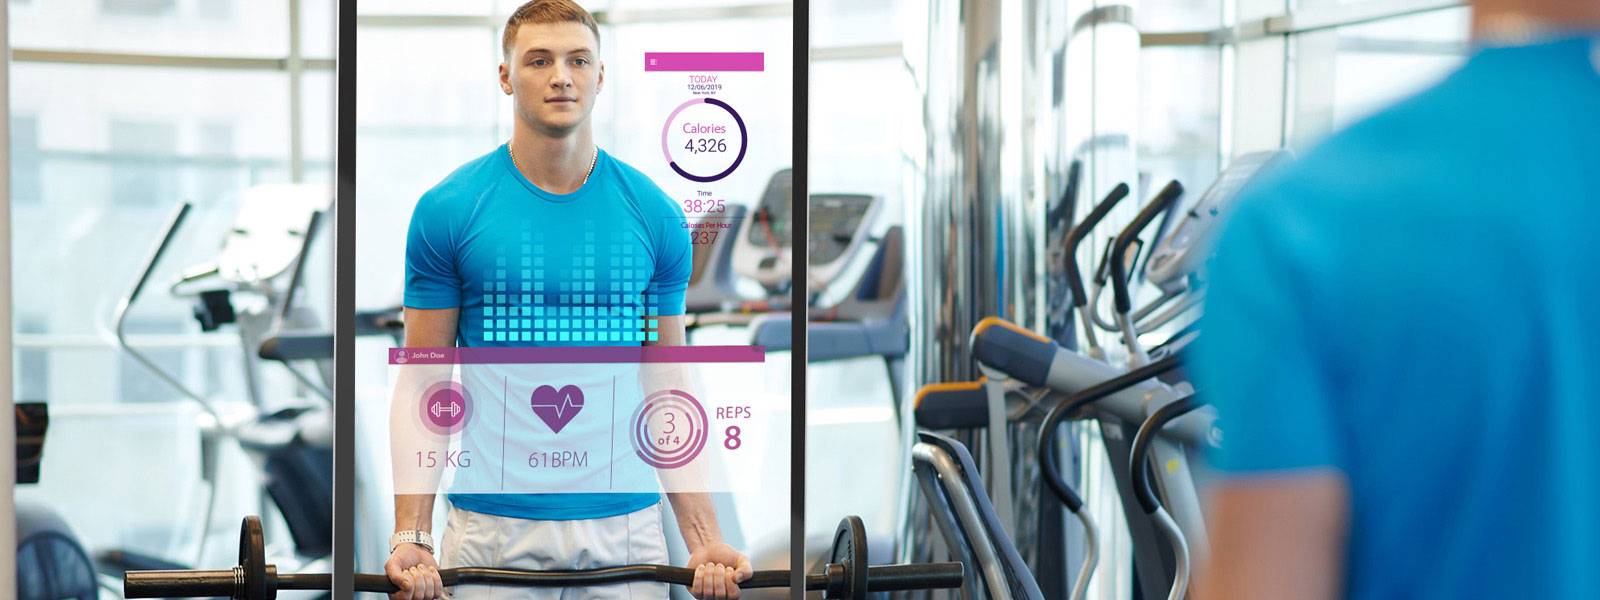 Man at gym lifting weights with vital sign overlay